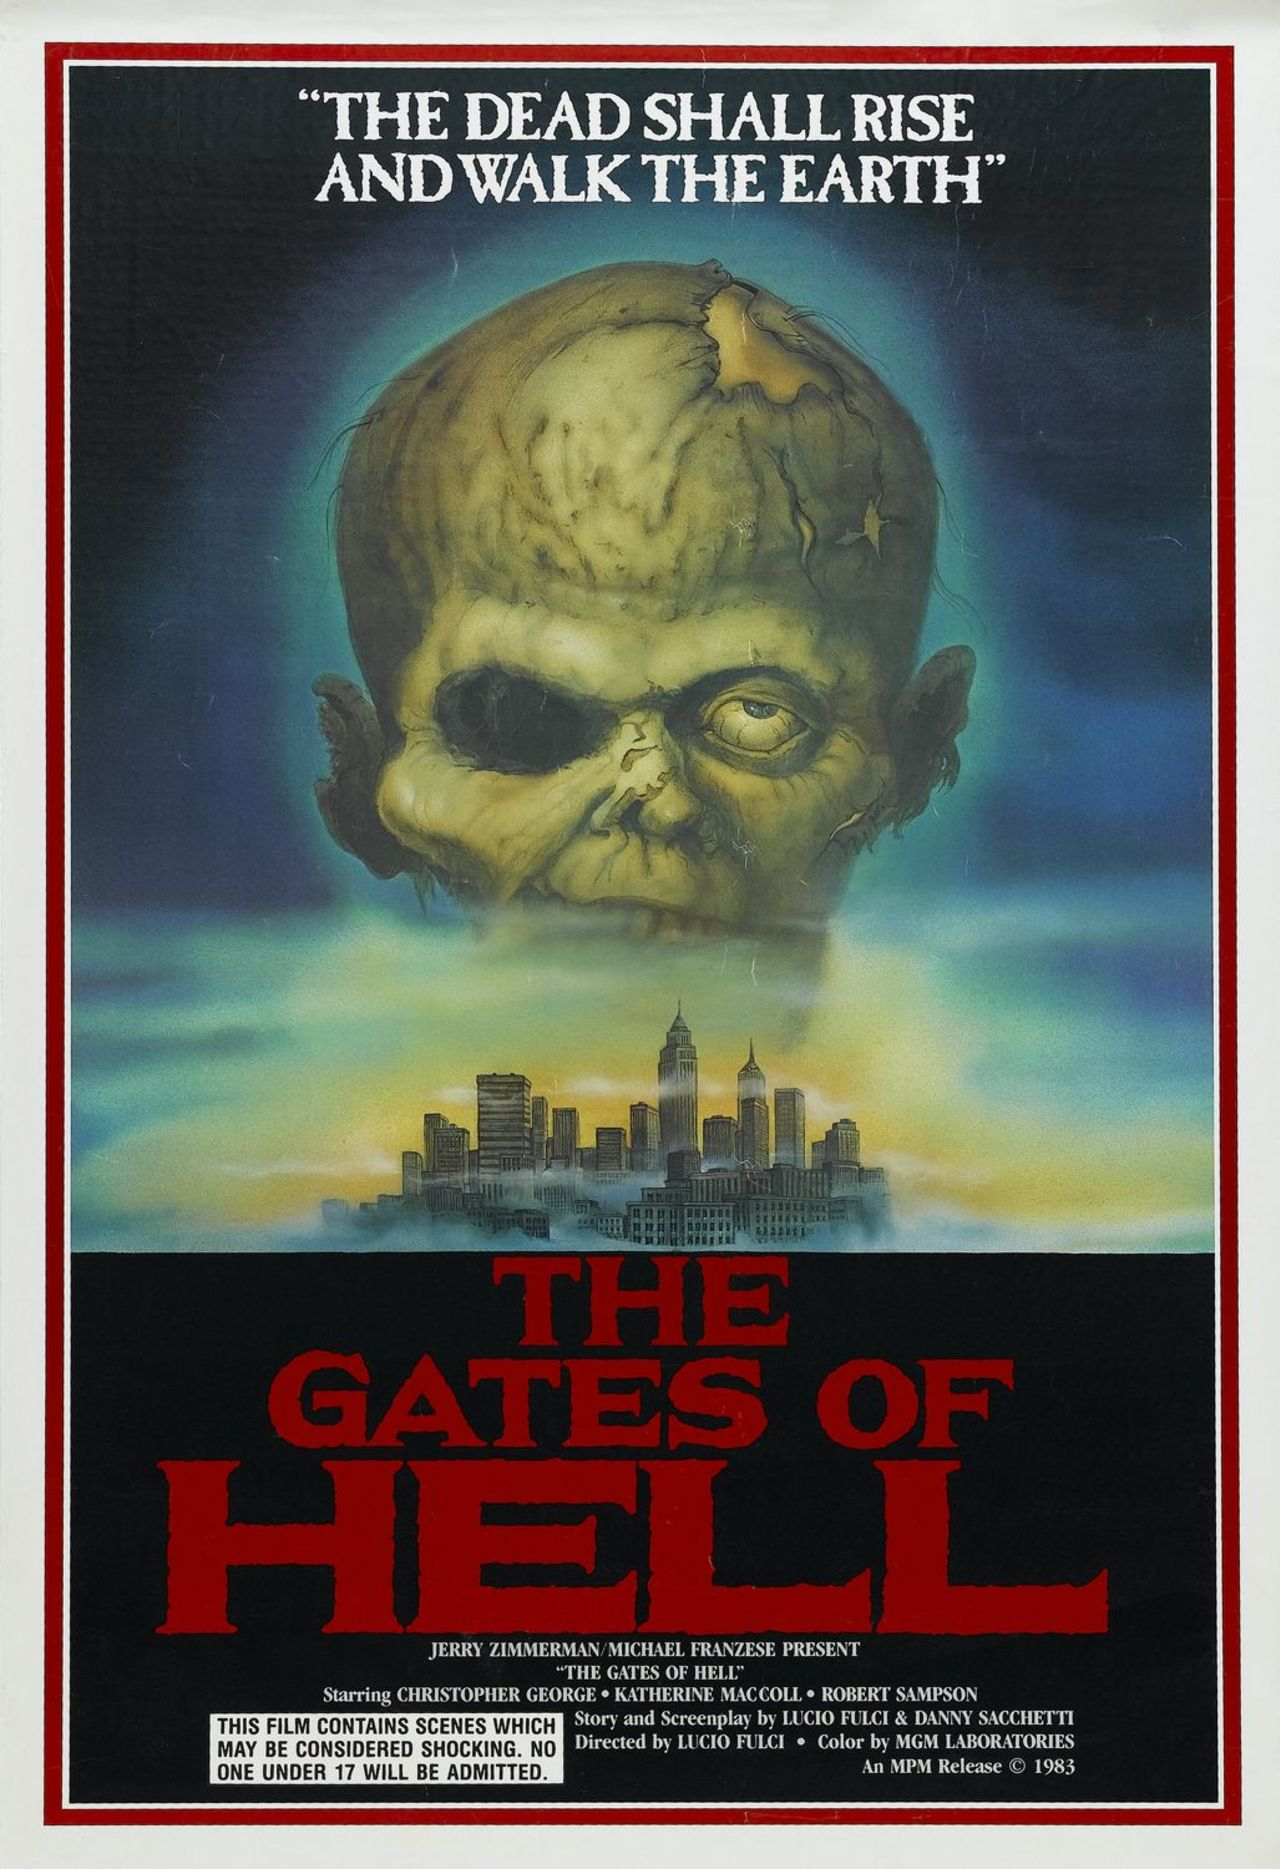 CITY OF THE LIVING DEAD (THE GATES OF HELL) (1980)